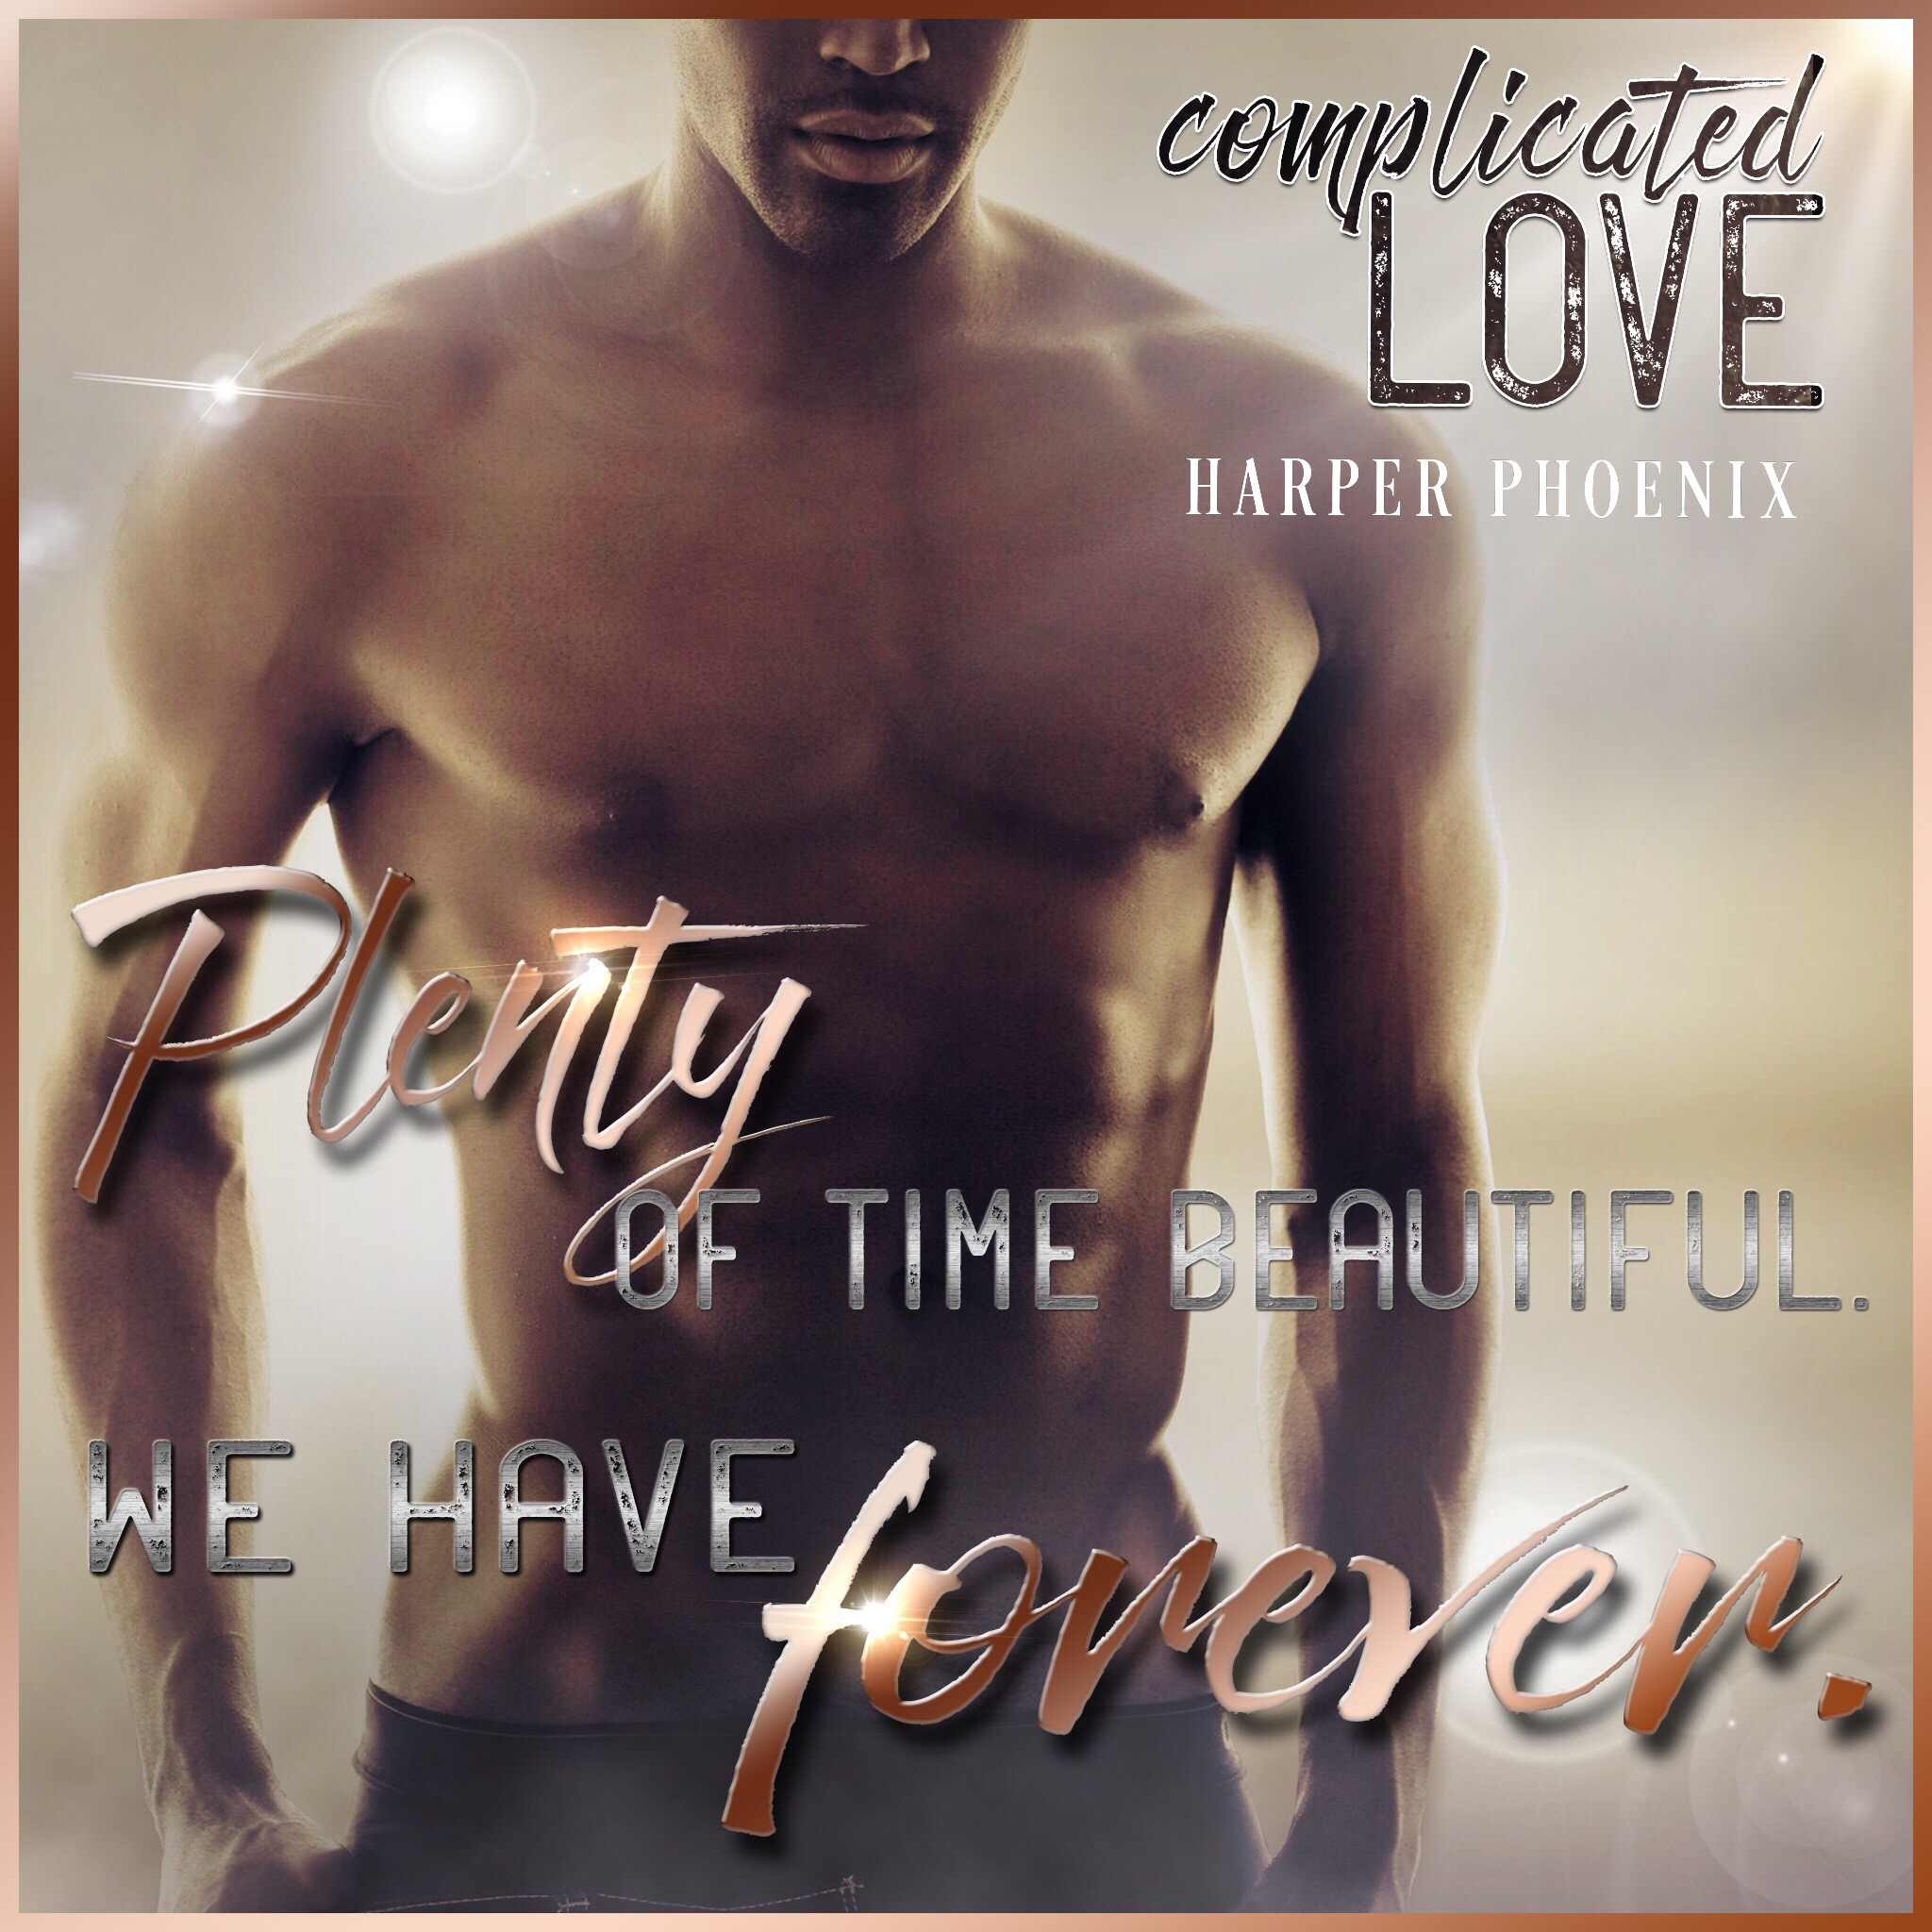 Complicated Love (Harper Phoenix)